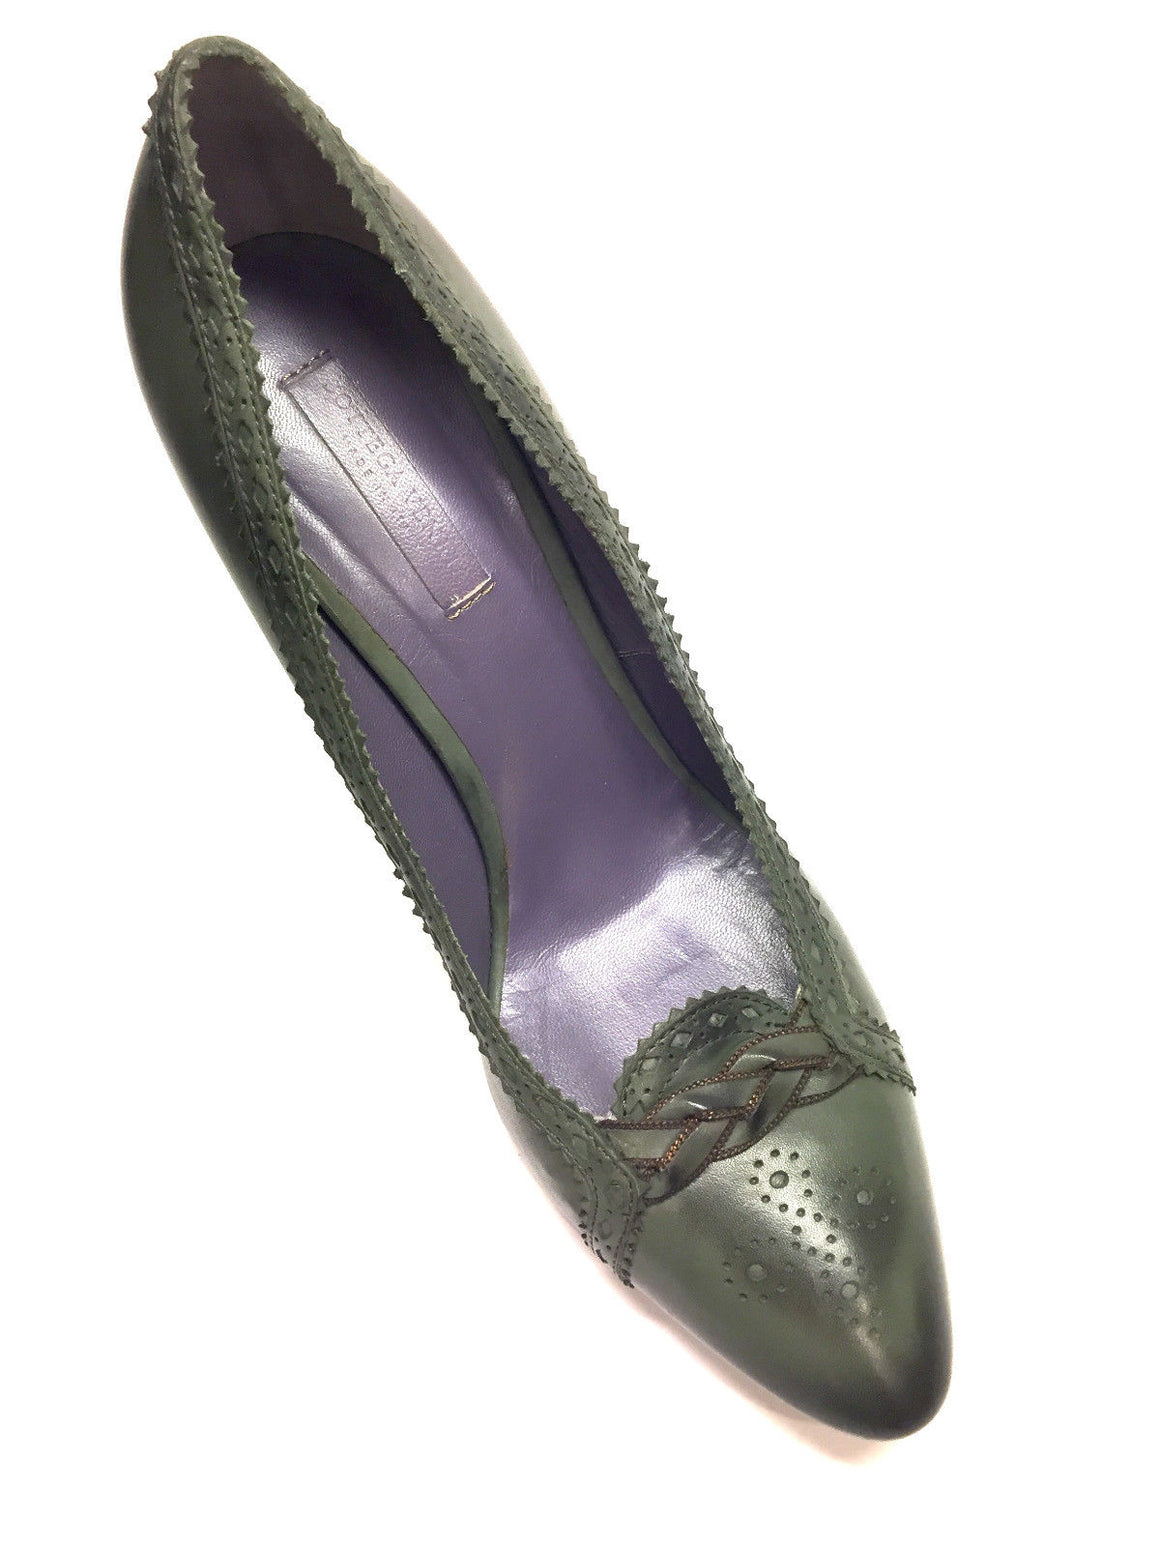 bisbiz.com BOTTEGA VENETA Green Marbled Leather Perforated Trim Heel Pumps Size: 39 / 9 - Bis Luxury Resale